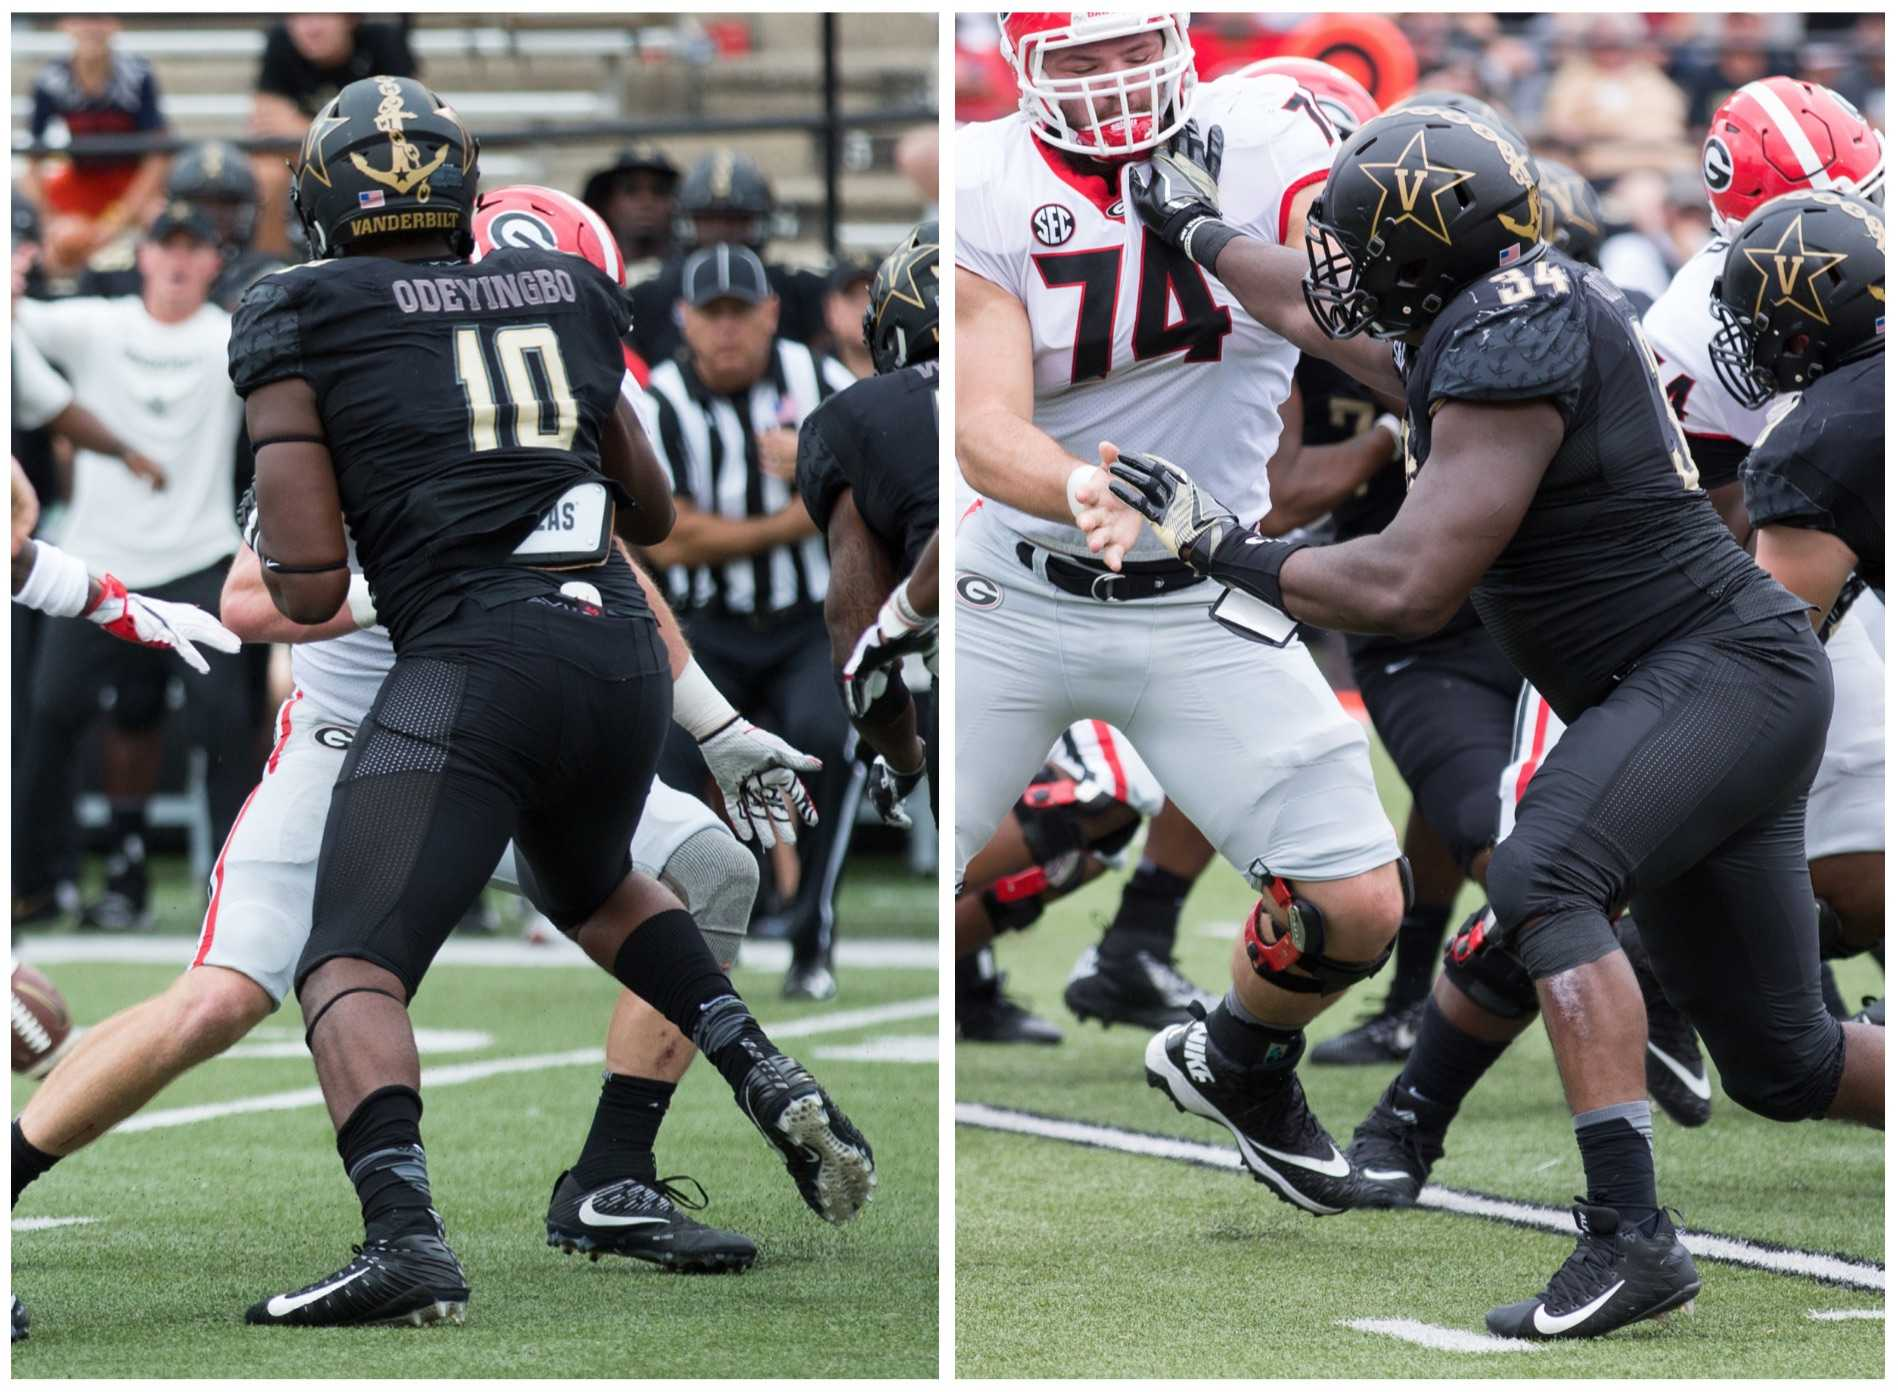 Vanderbilt Football: A team of brotherly love